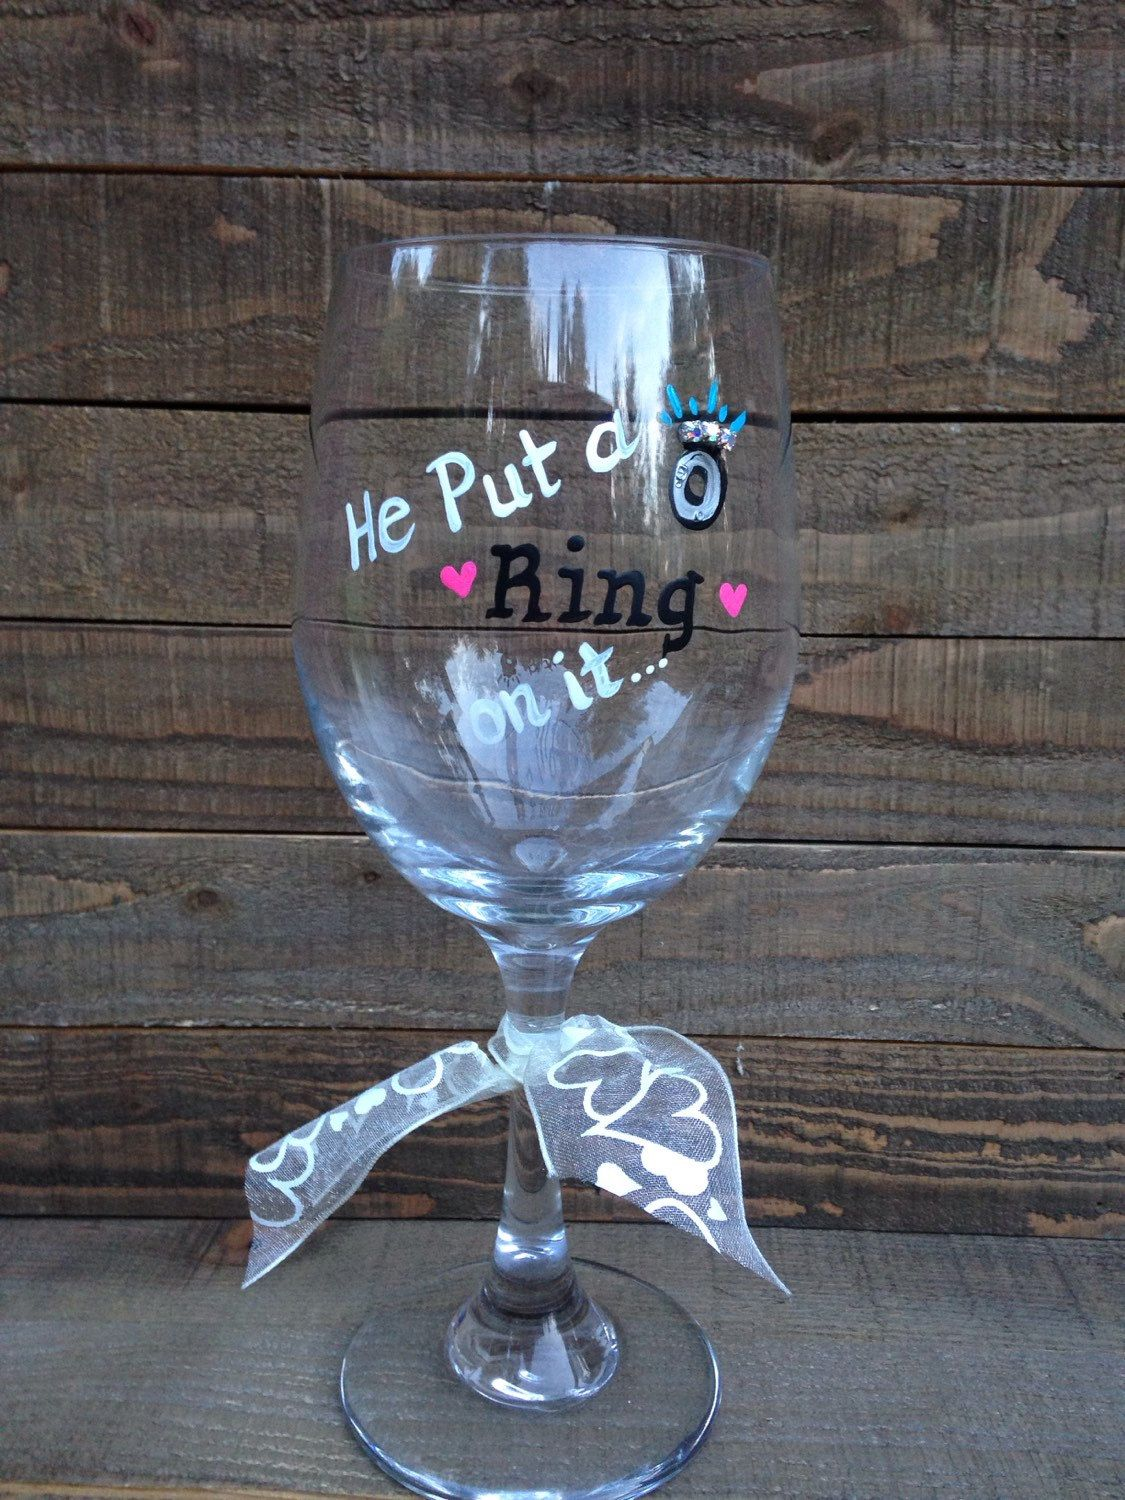 He put a ring on it wine glass by Sealedwithakissgift on Etsy https://www.etsy.com/listing/232956133/he-put-a-ring-on-it-wine-glass